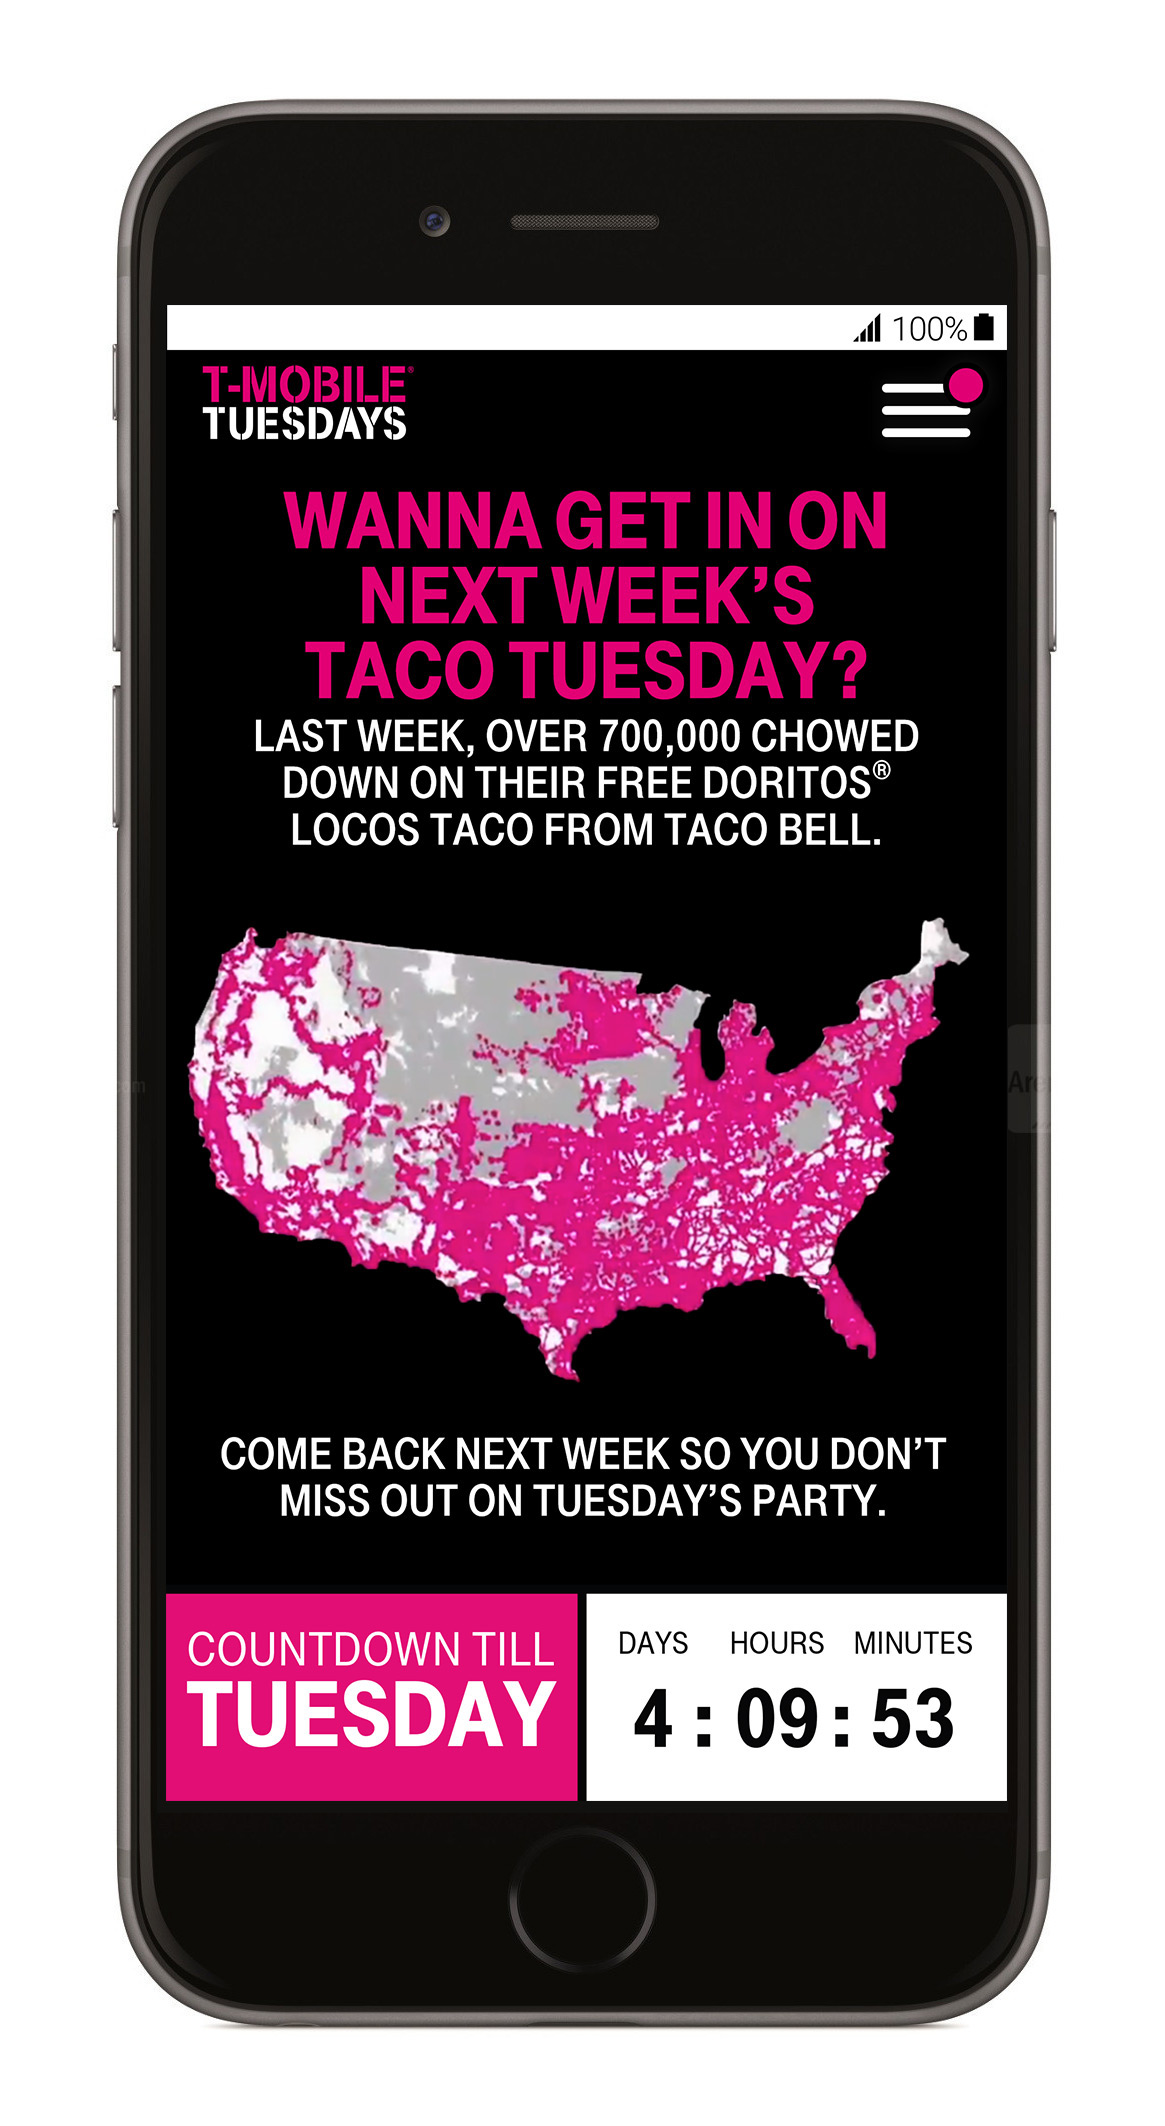 T-MOBILE TUESDAYS on Behance